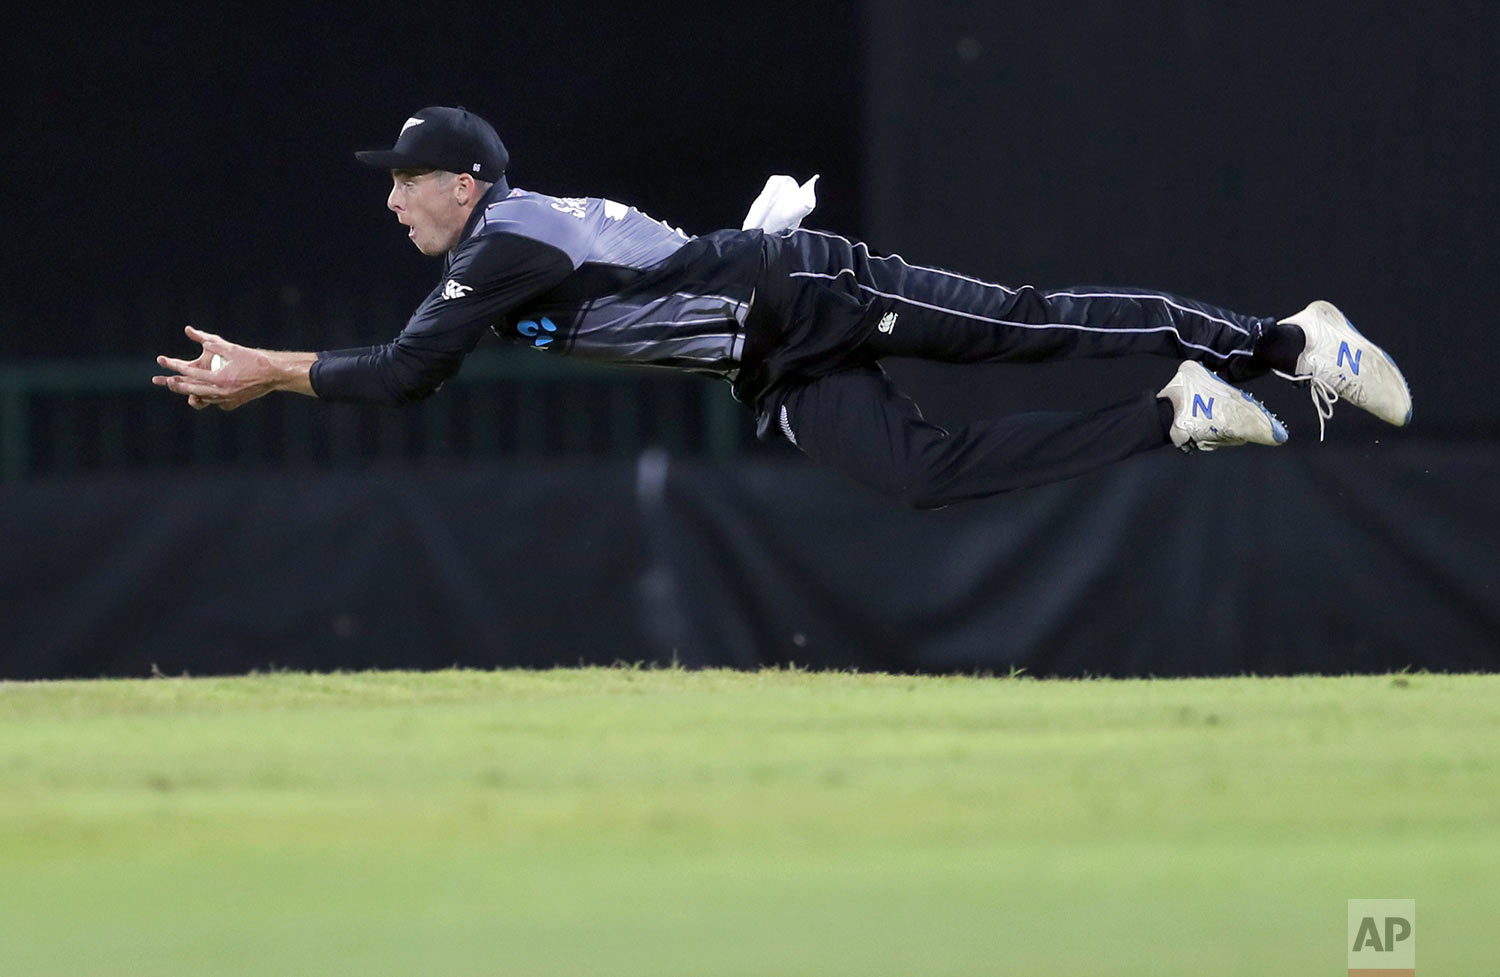 New Zealand's Mitchell Santner successfully takes a catch to dismiss Sri Lanka's Avishka Fernando during the second Twenty20 international cricket match between Sri Lanka and New Zealand in Pallekele, Sri Lanka, Tuesday, Sept. 3, 2019. (AP Photo/Eranga Jayawardena)